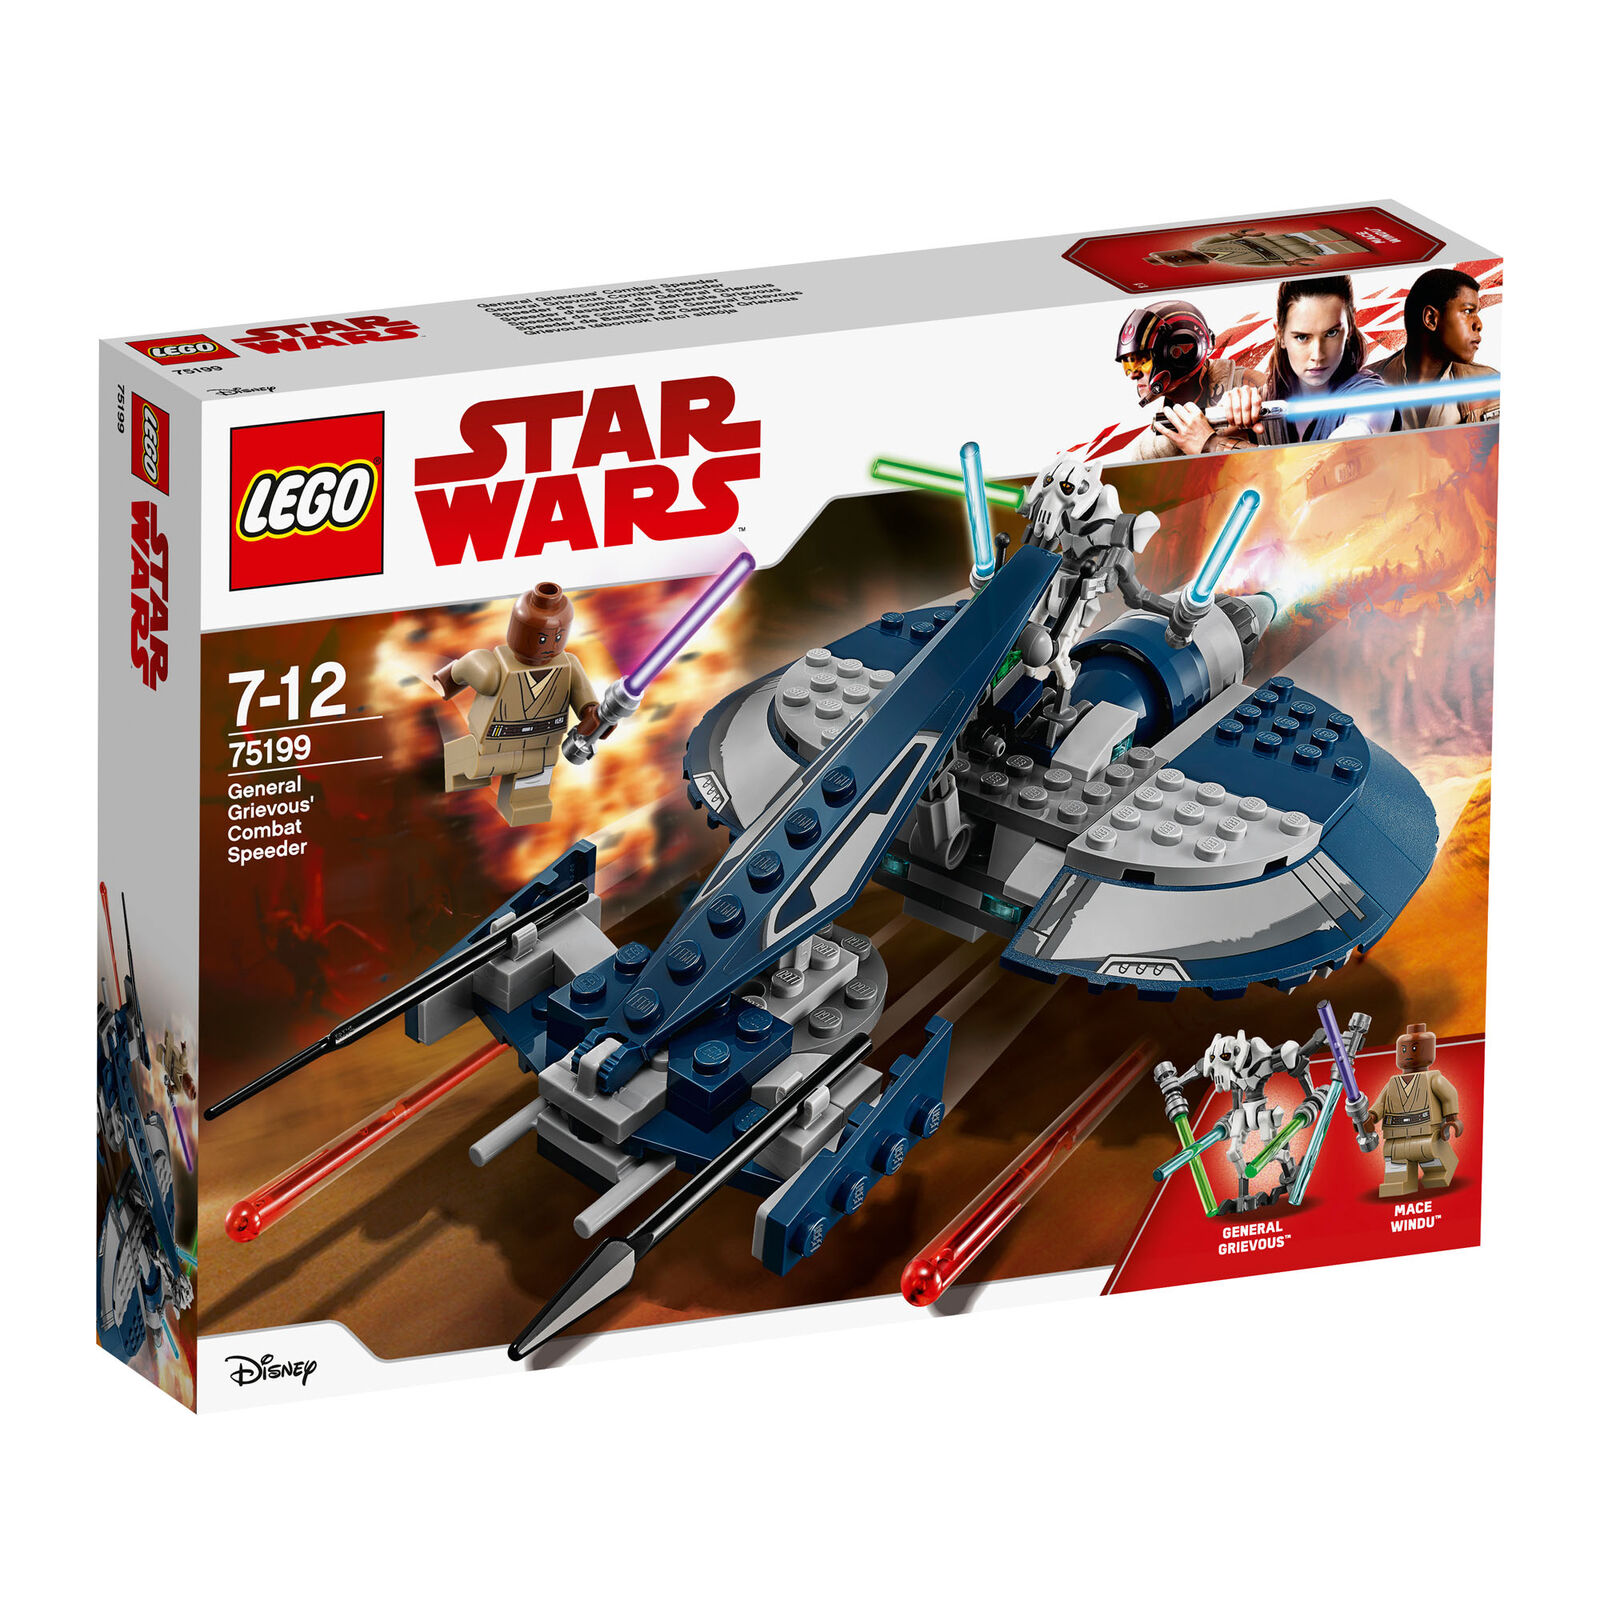 75199 LEGO Star Wars General Grievous' Combat Speeder 157 Pieces Age 7+ New 2018